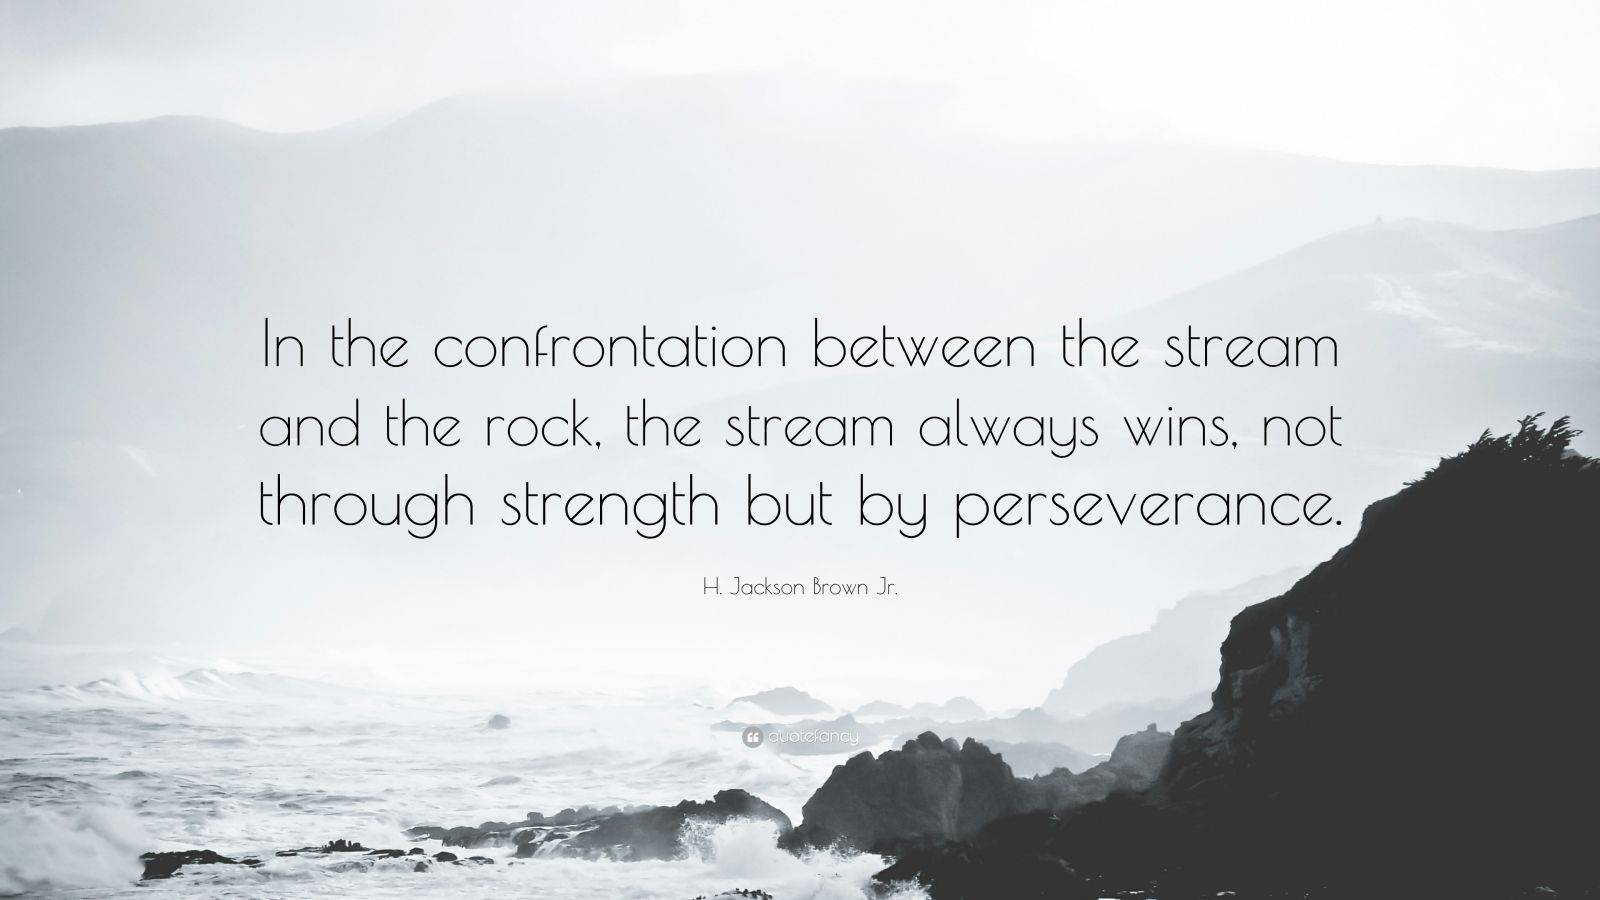 """H. Jackson Brown Jr. Quote: """"In the confrontation between the stream and the rock, the stream always wins, not through strength but by perseverance."""""""